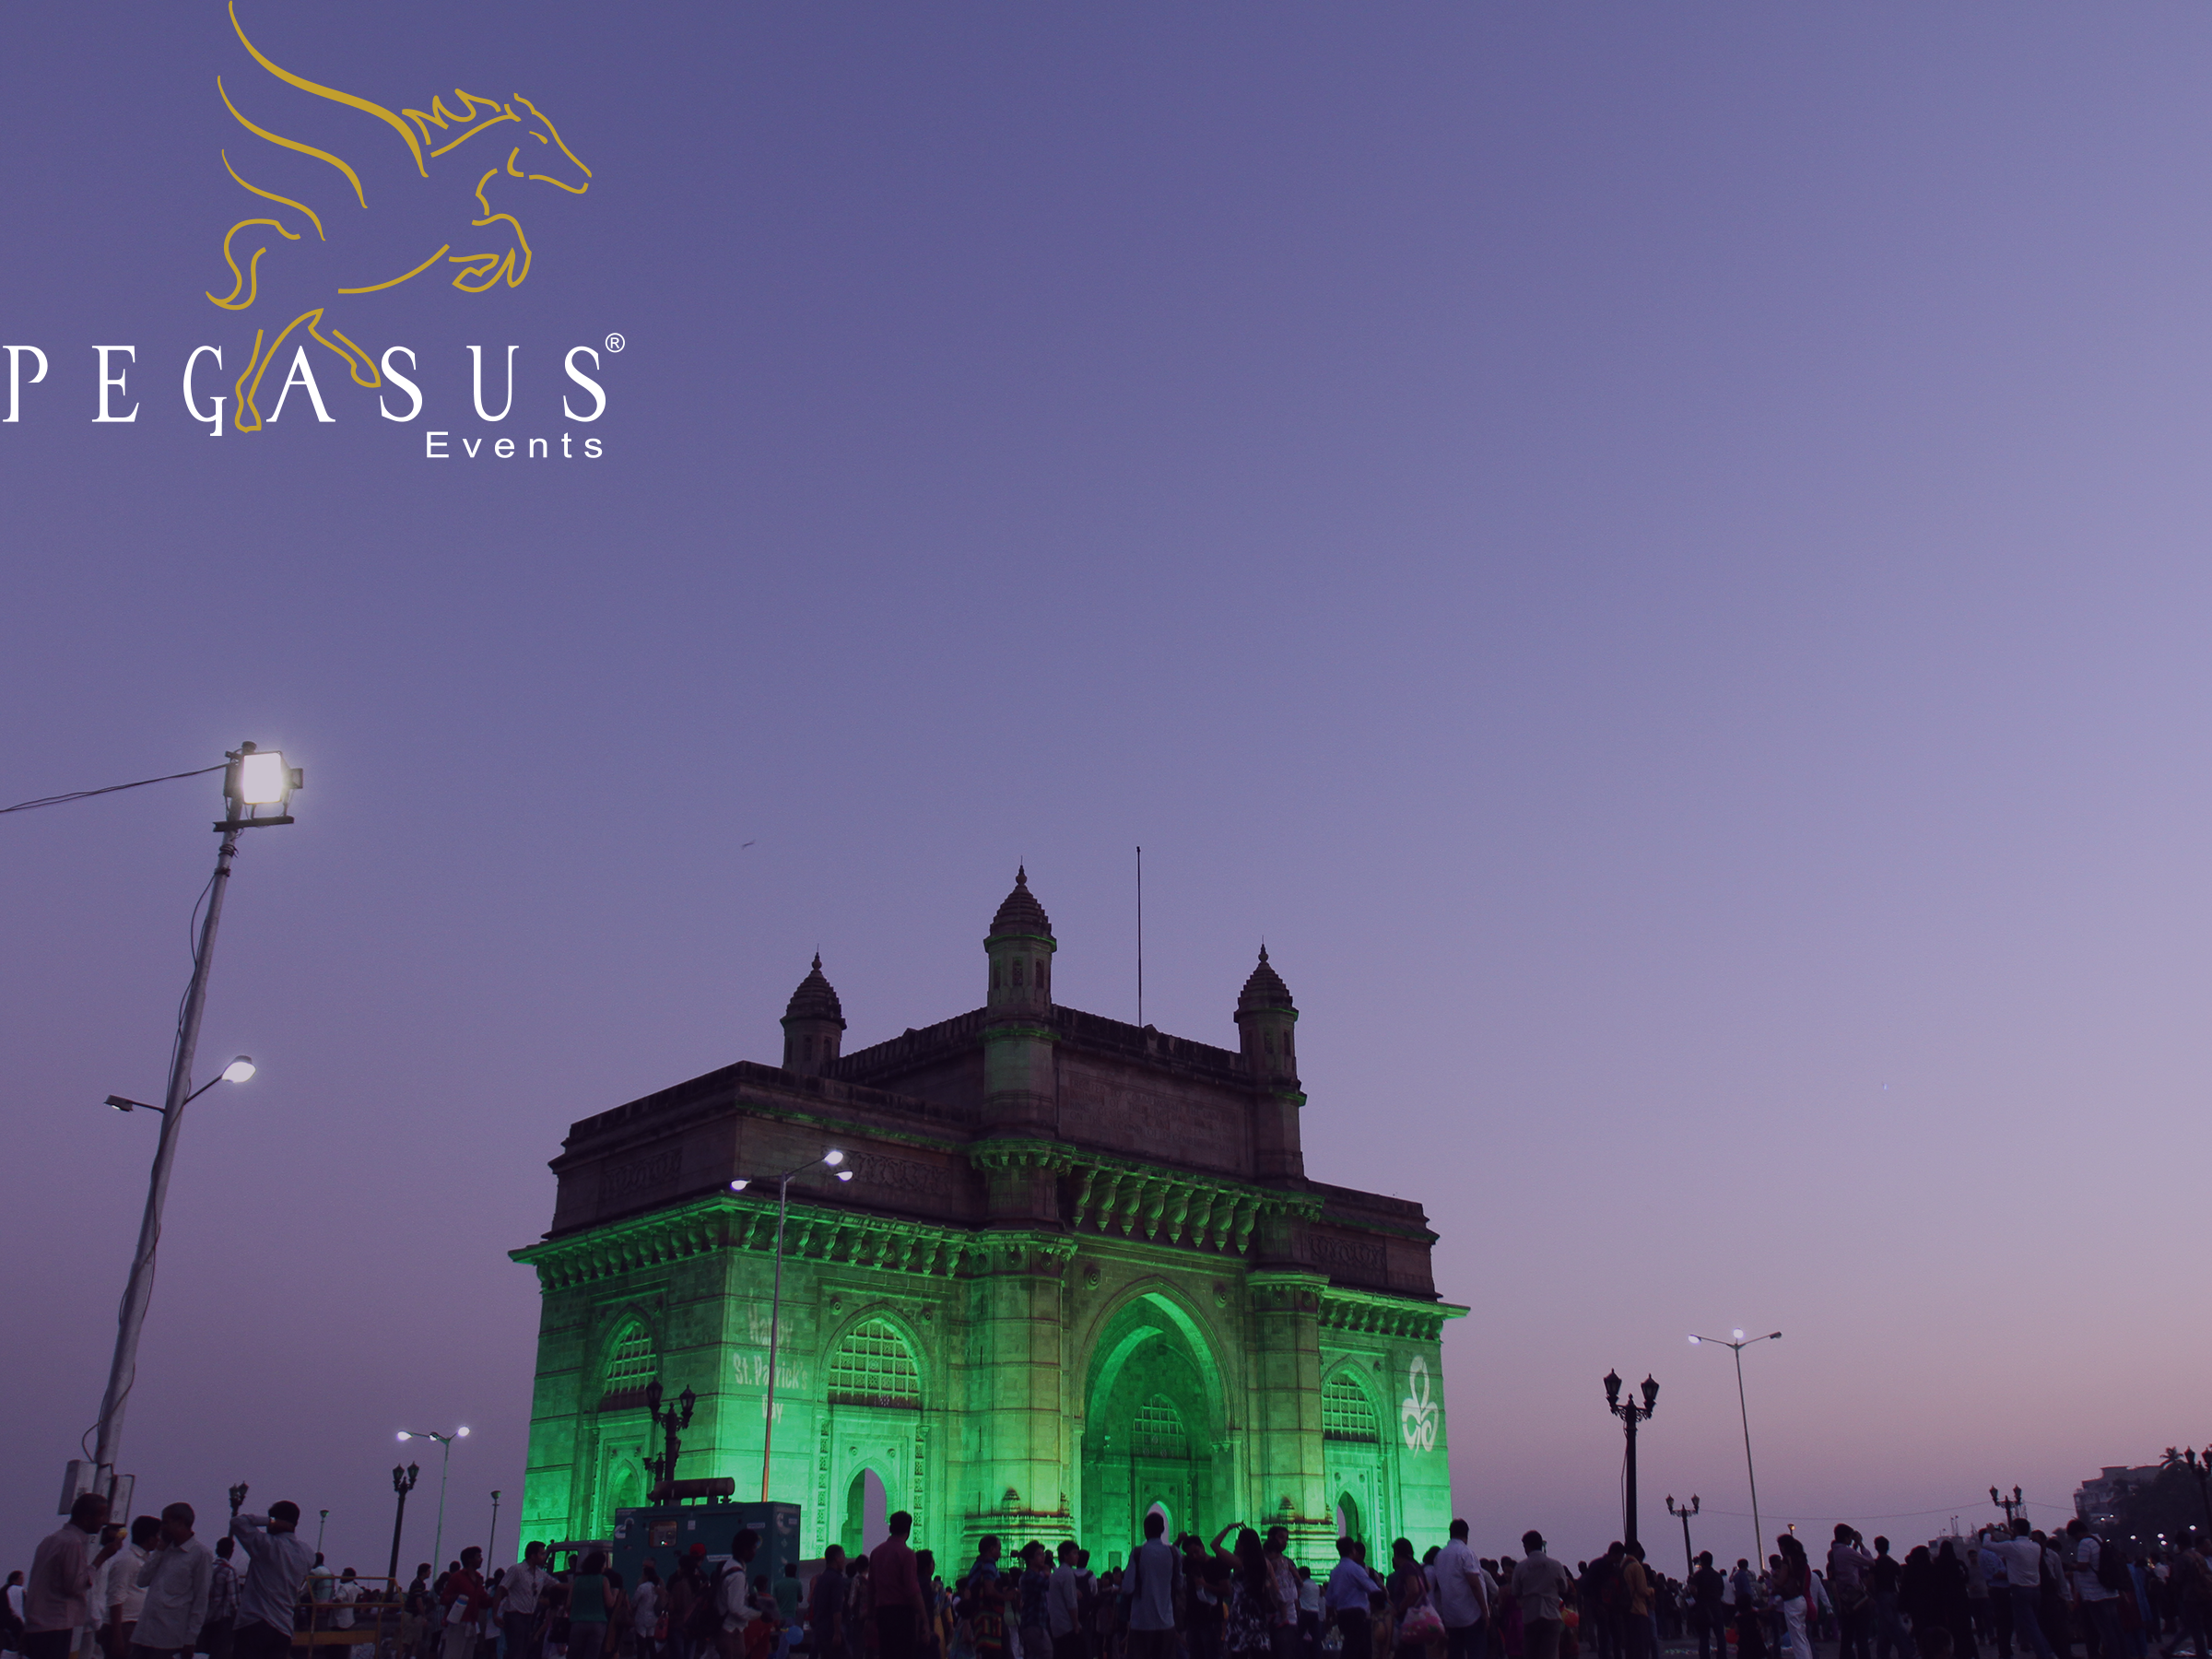 Gateway of India Illumination by Pegasus Events Pvt Ltd